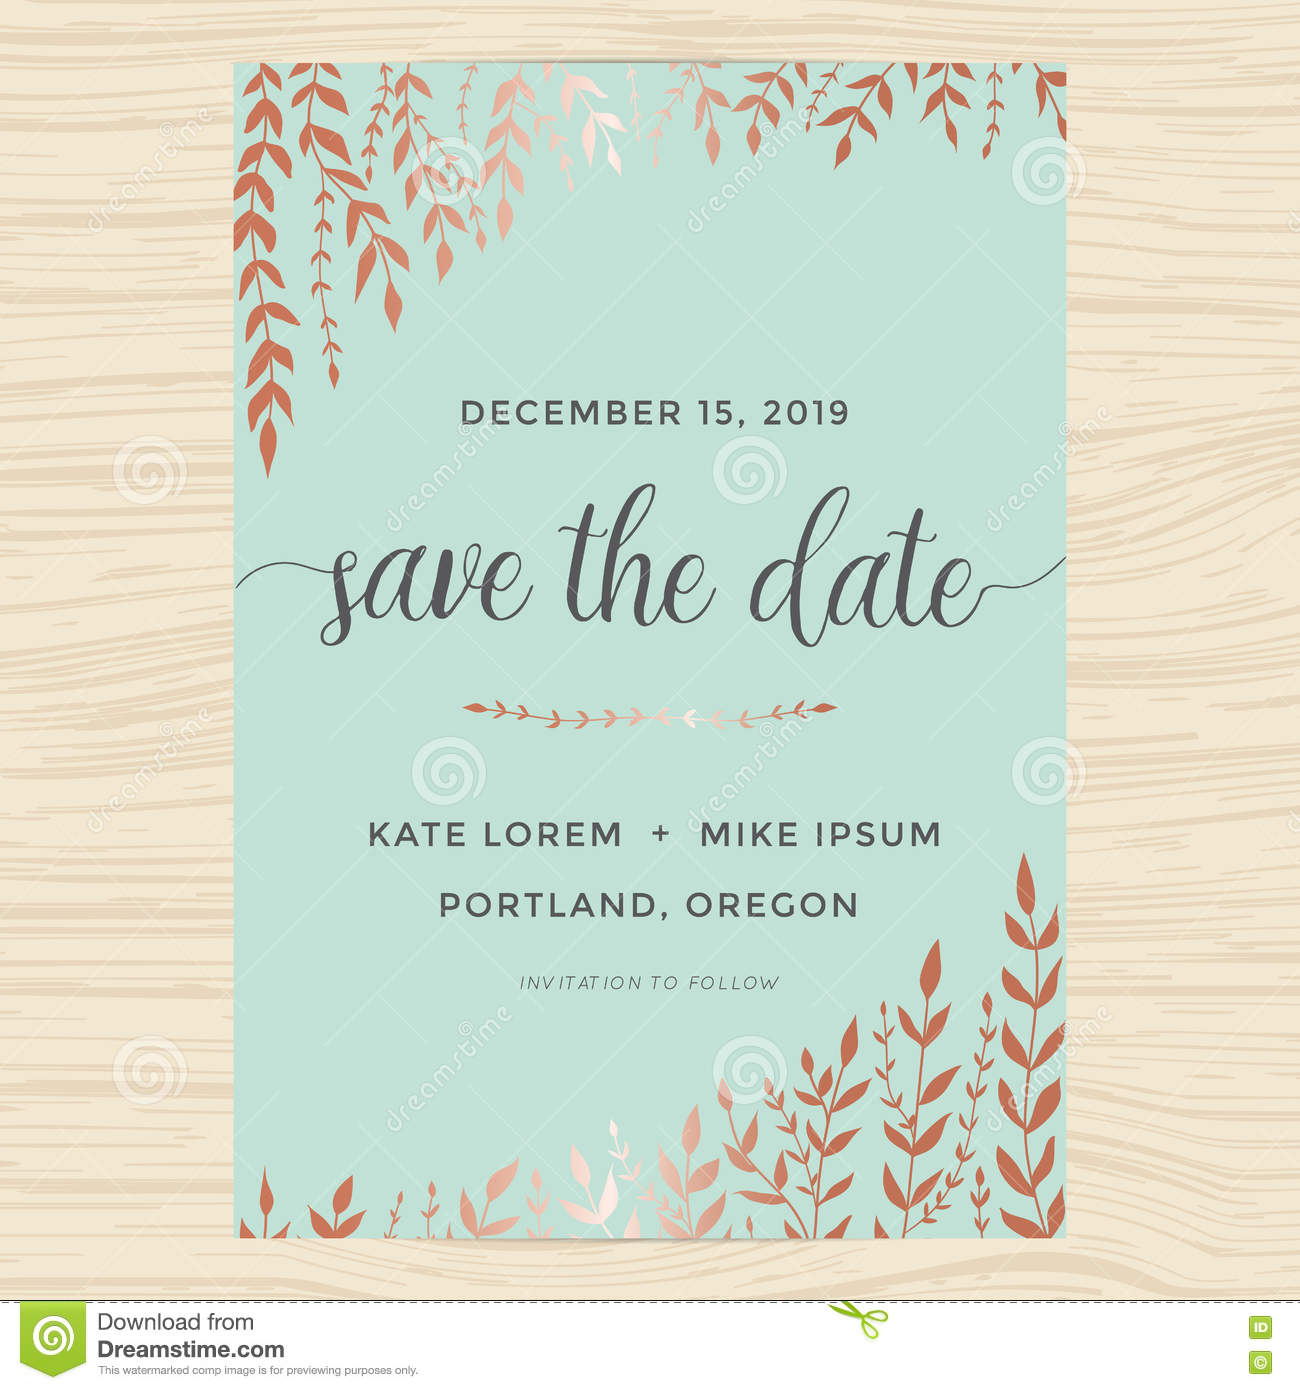 Elegant Garden Leafs In Copper Color Design For Save The Date Card, Wedding  Invitation Template